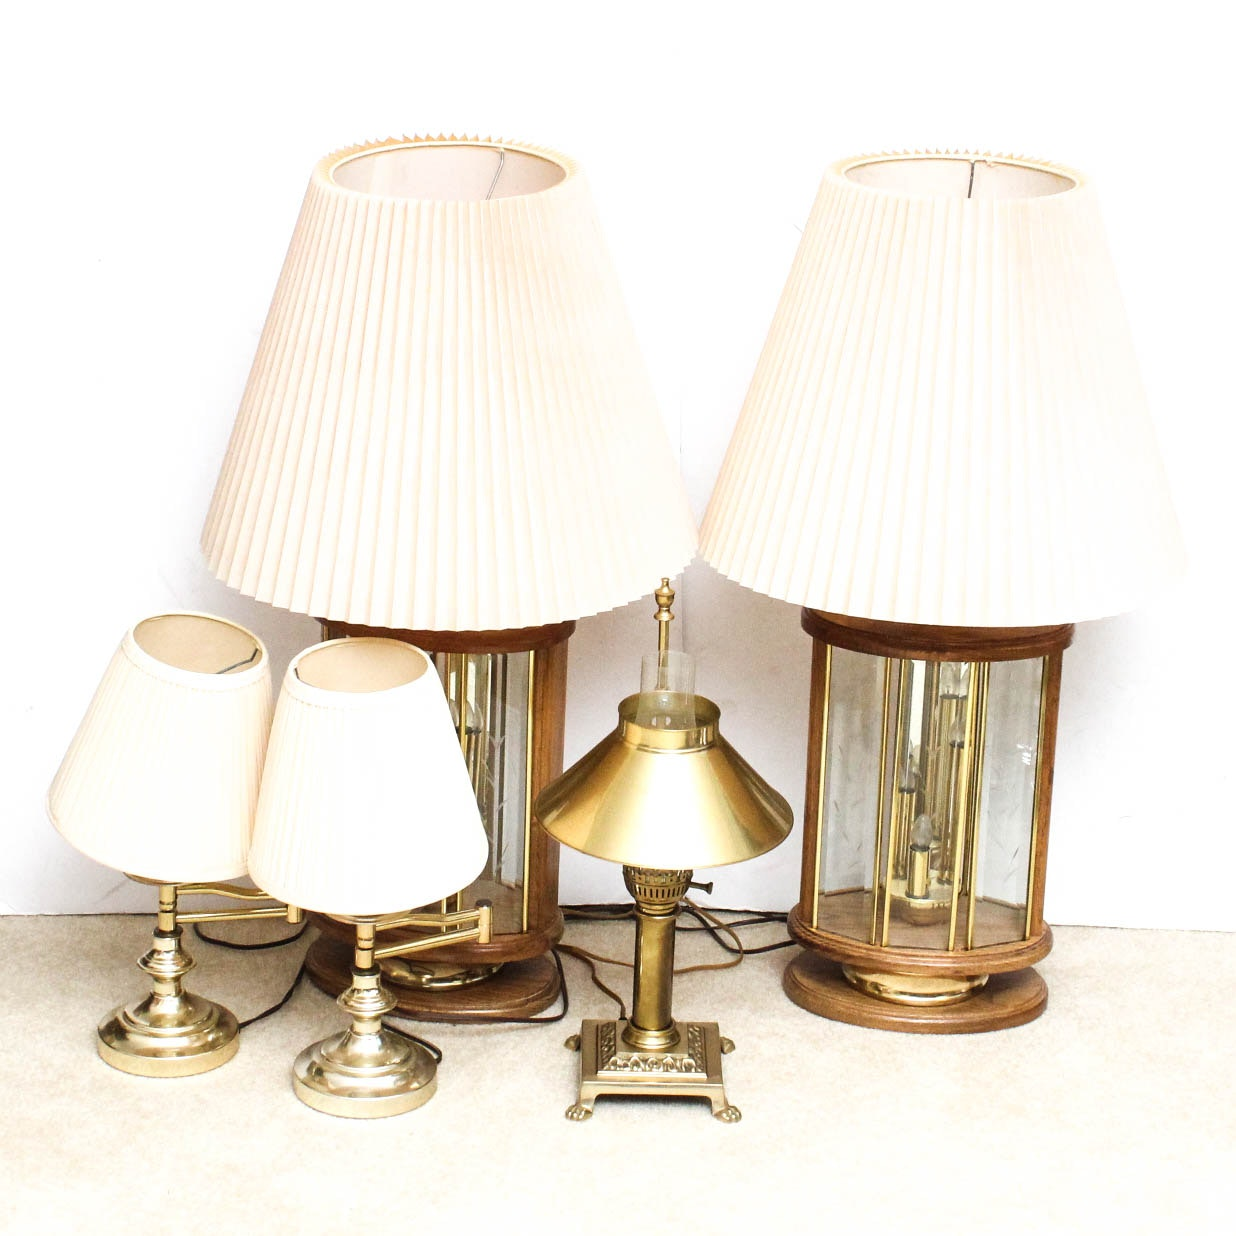 Brass and Wood Table Lamps